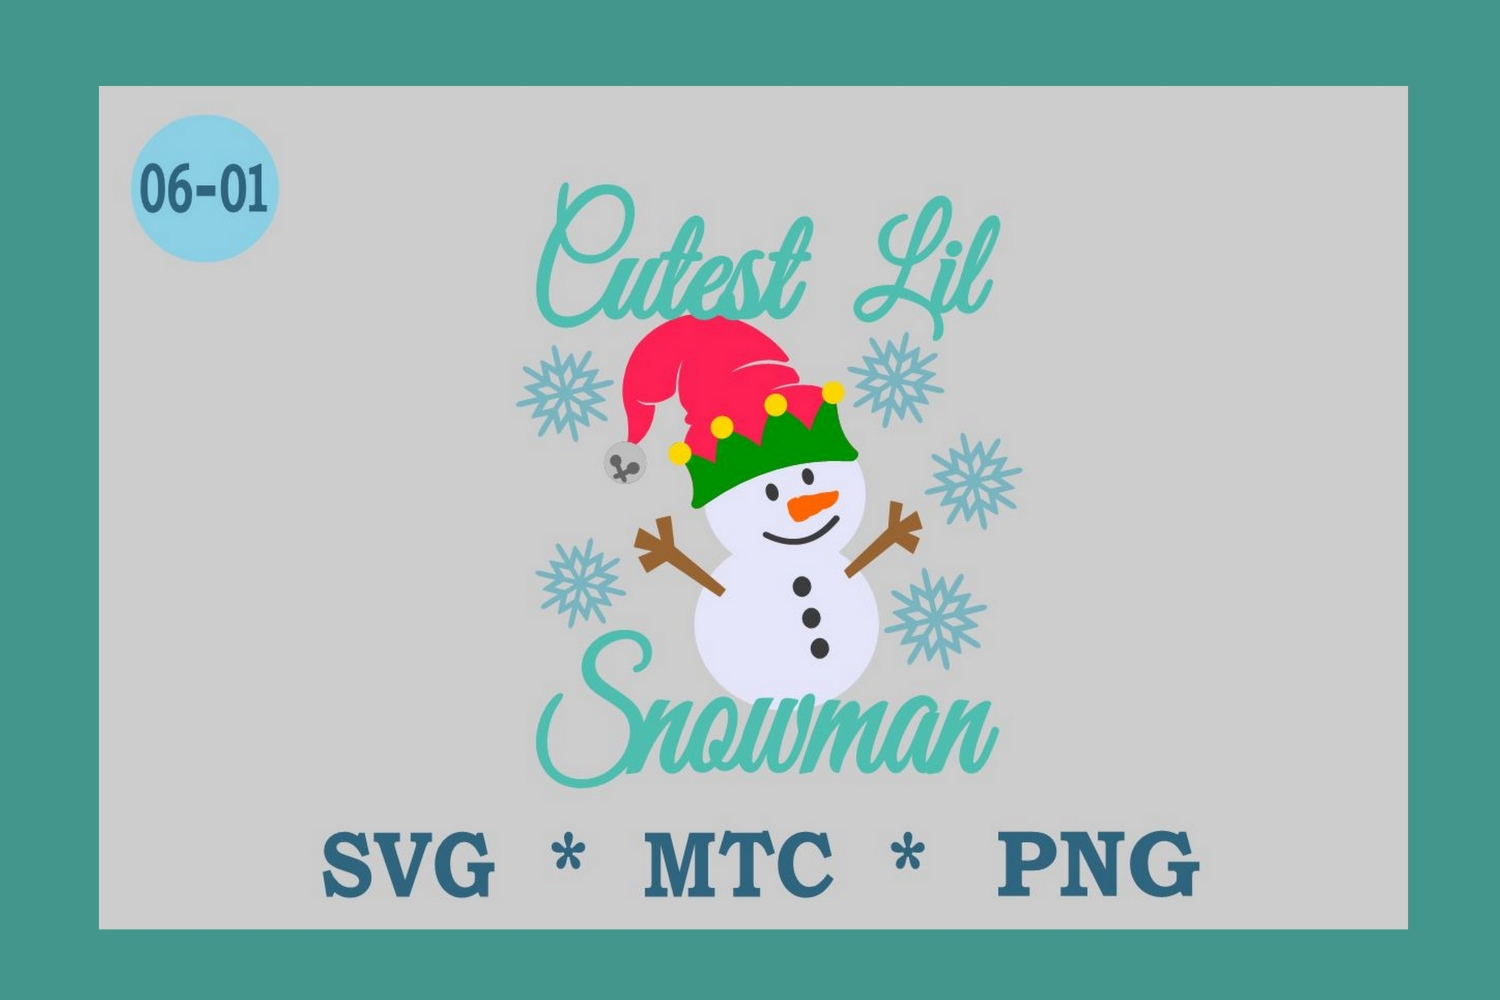 Cutest Lil Snowman w/Hat Design #06-01 Winter SVG Cut File example image 1